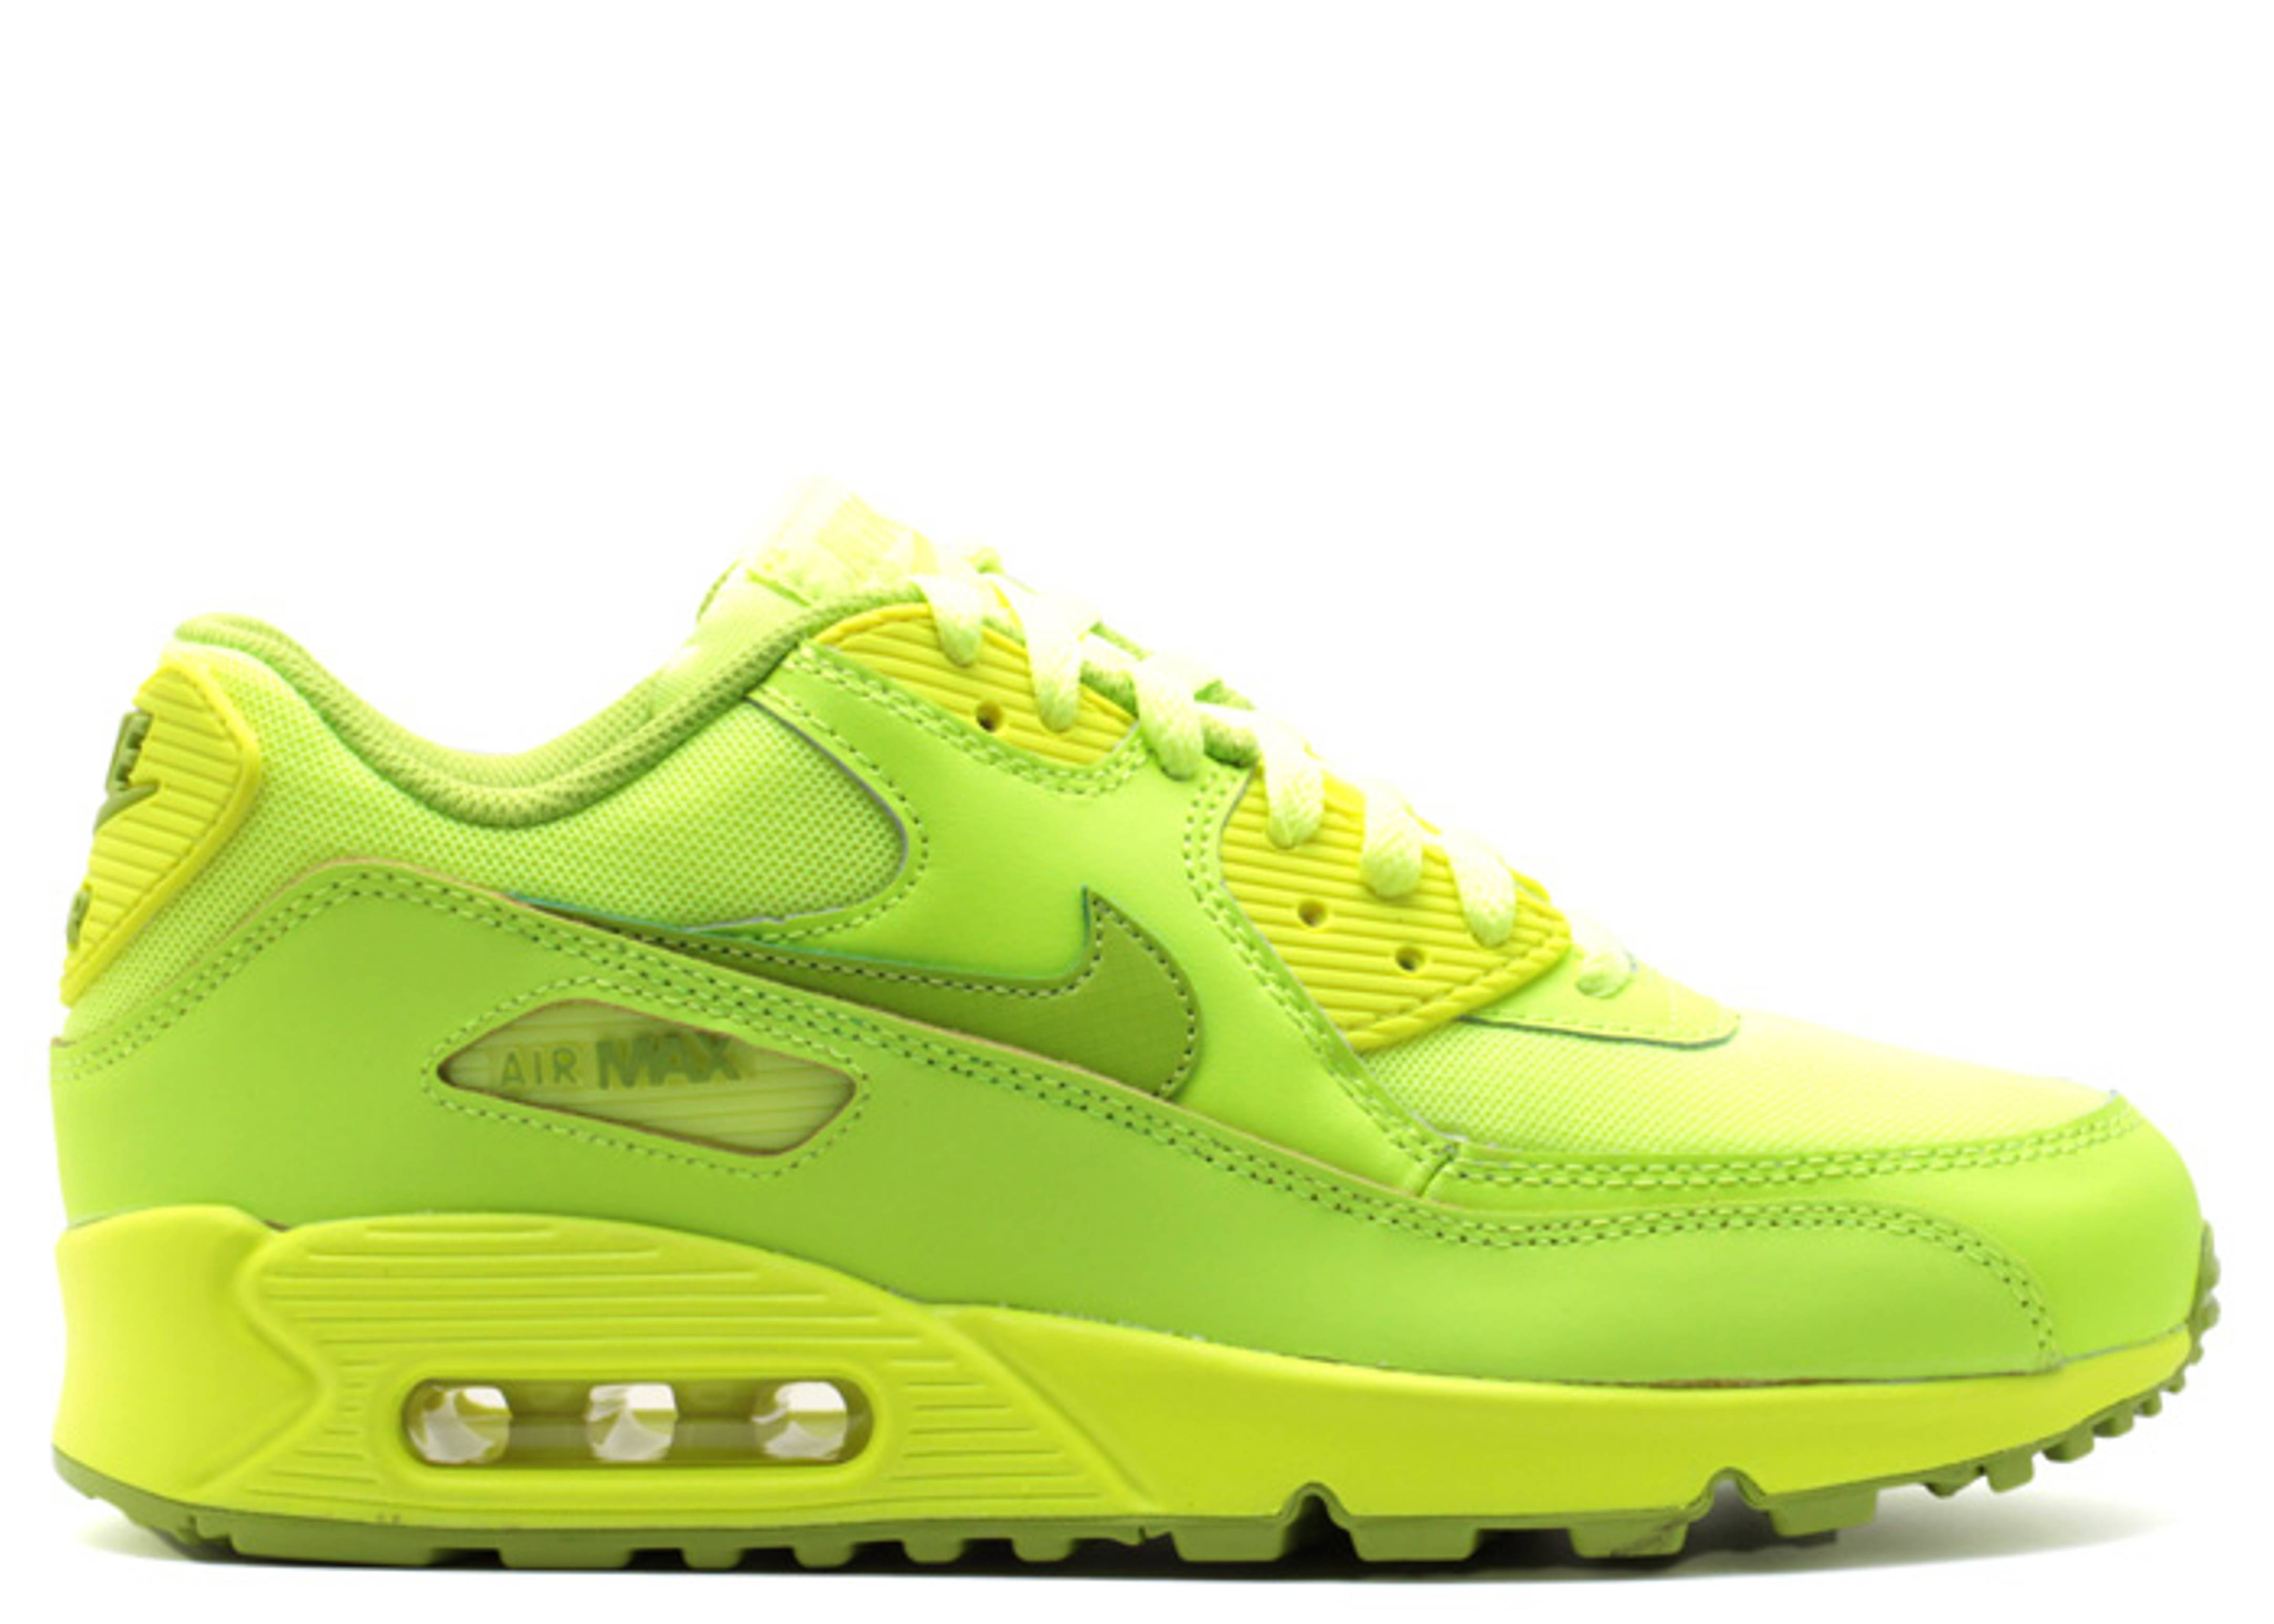 promo code 1df92 91af1 Air Max 90 (gs) - Nike - 307793 700 - volt fierce green   Flight Club